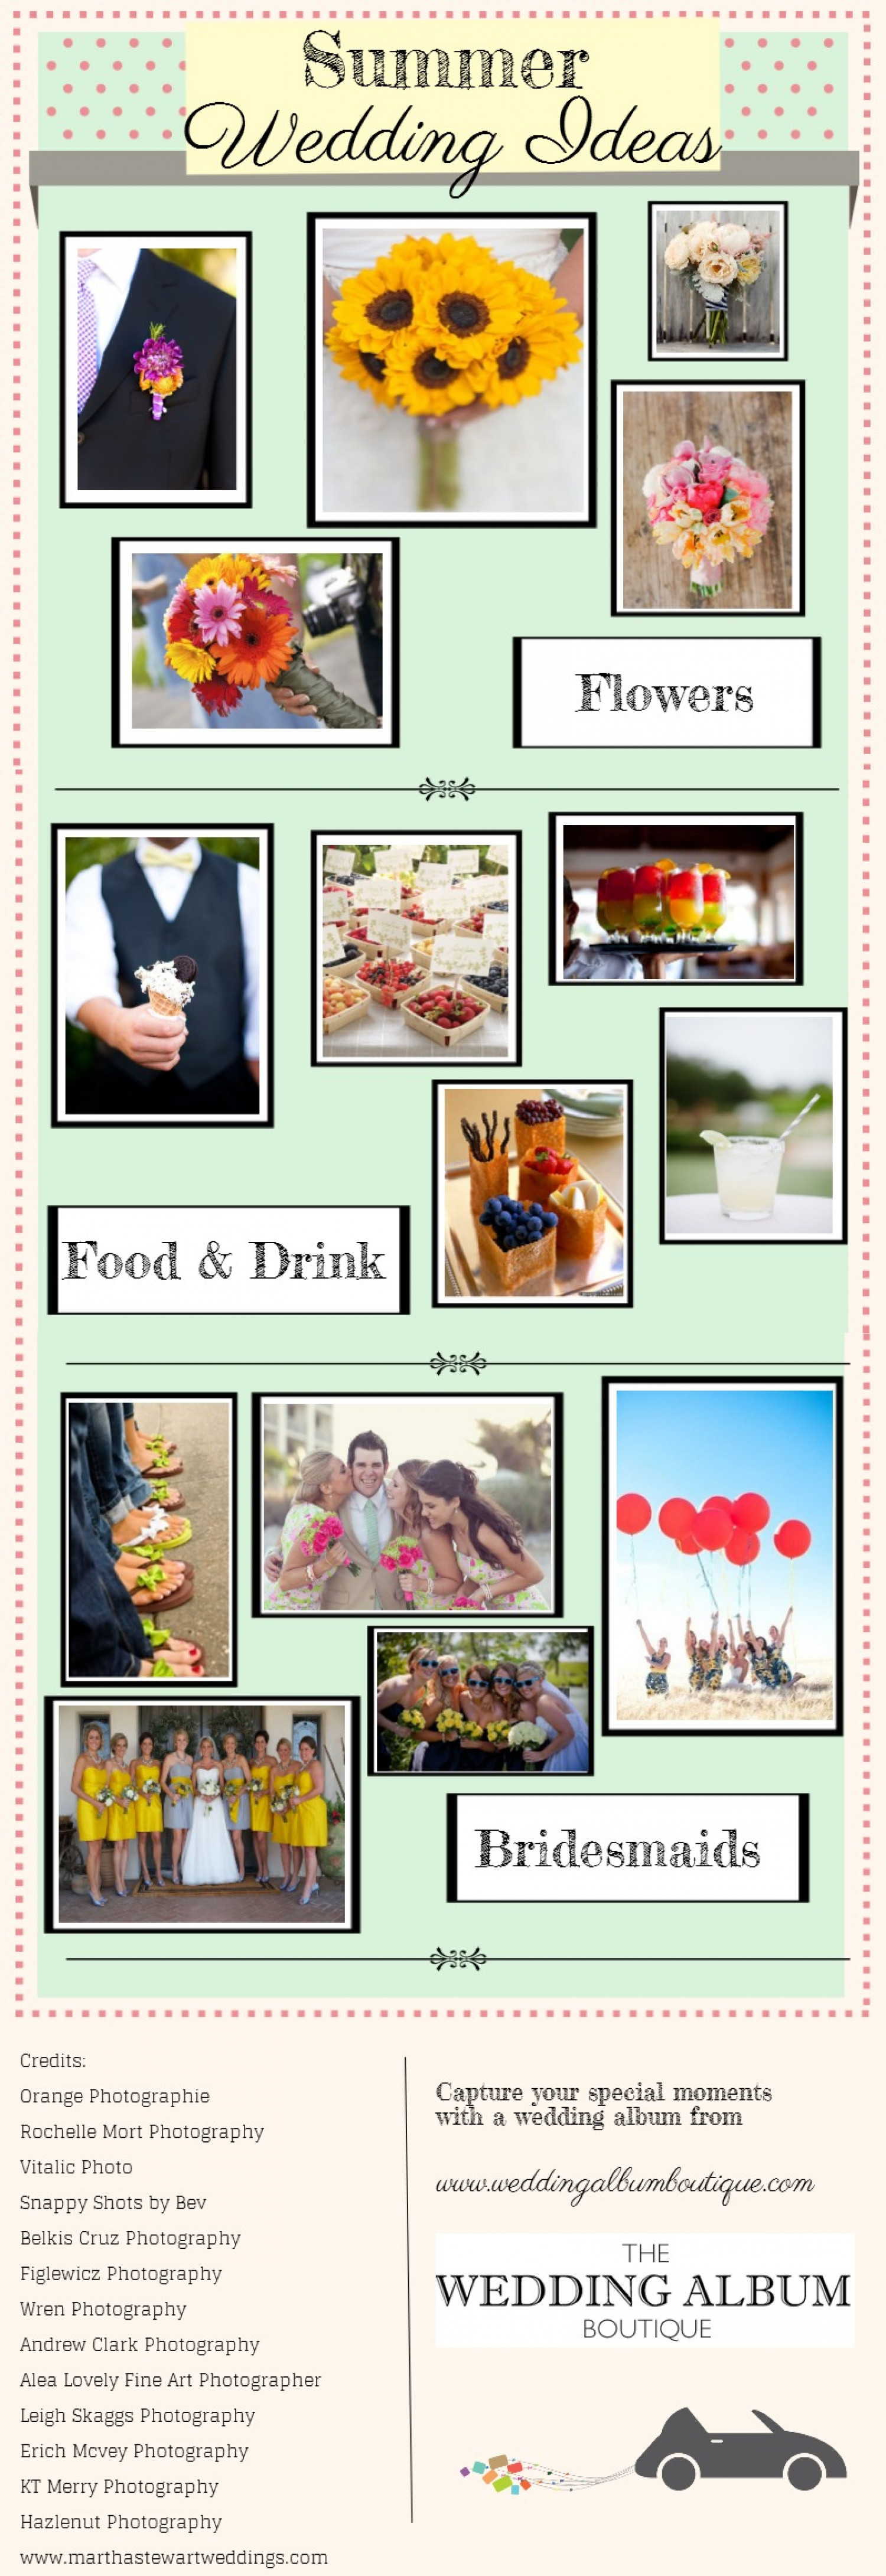 Summer Wedding Ideas Infographic